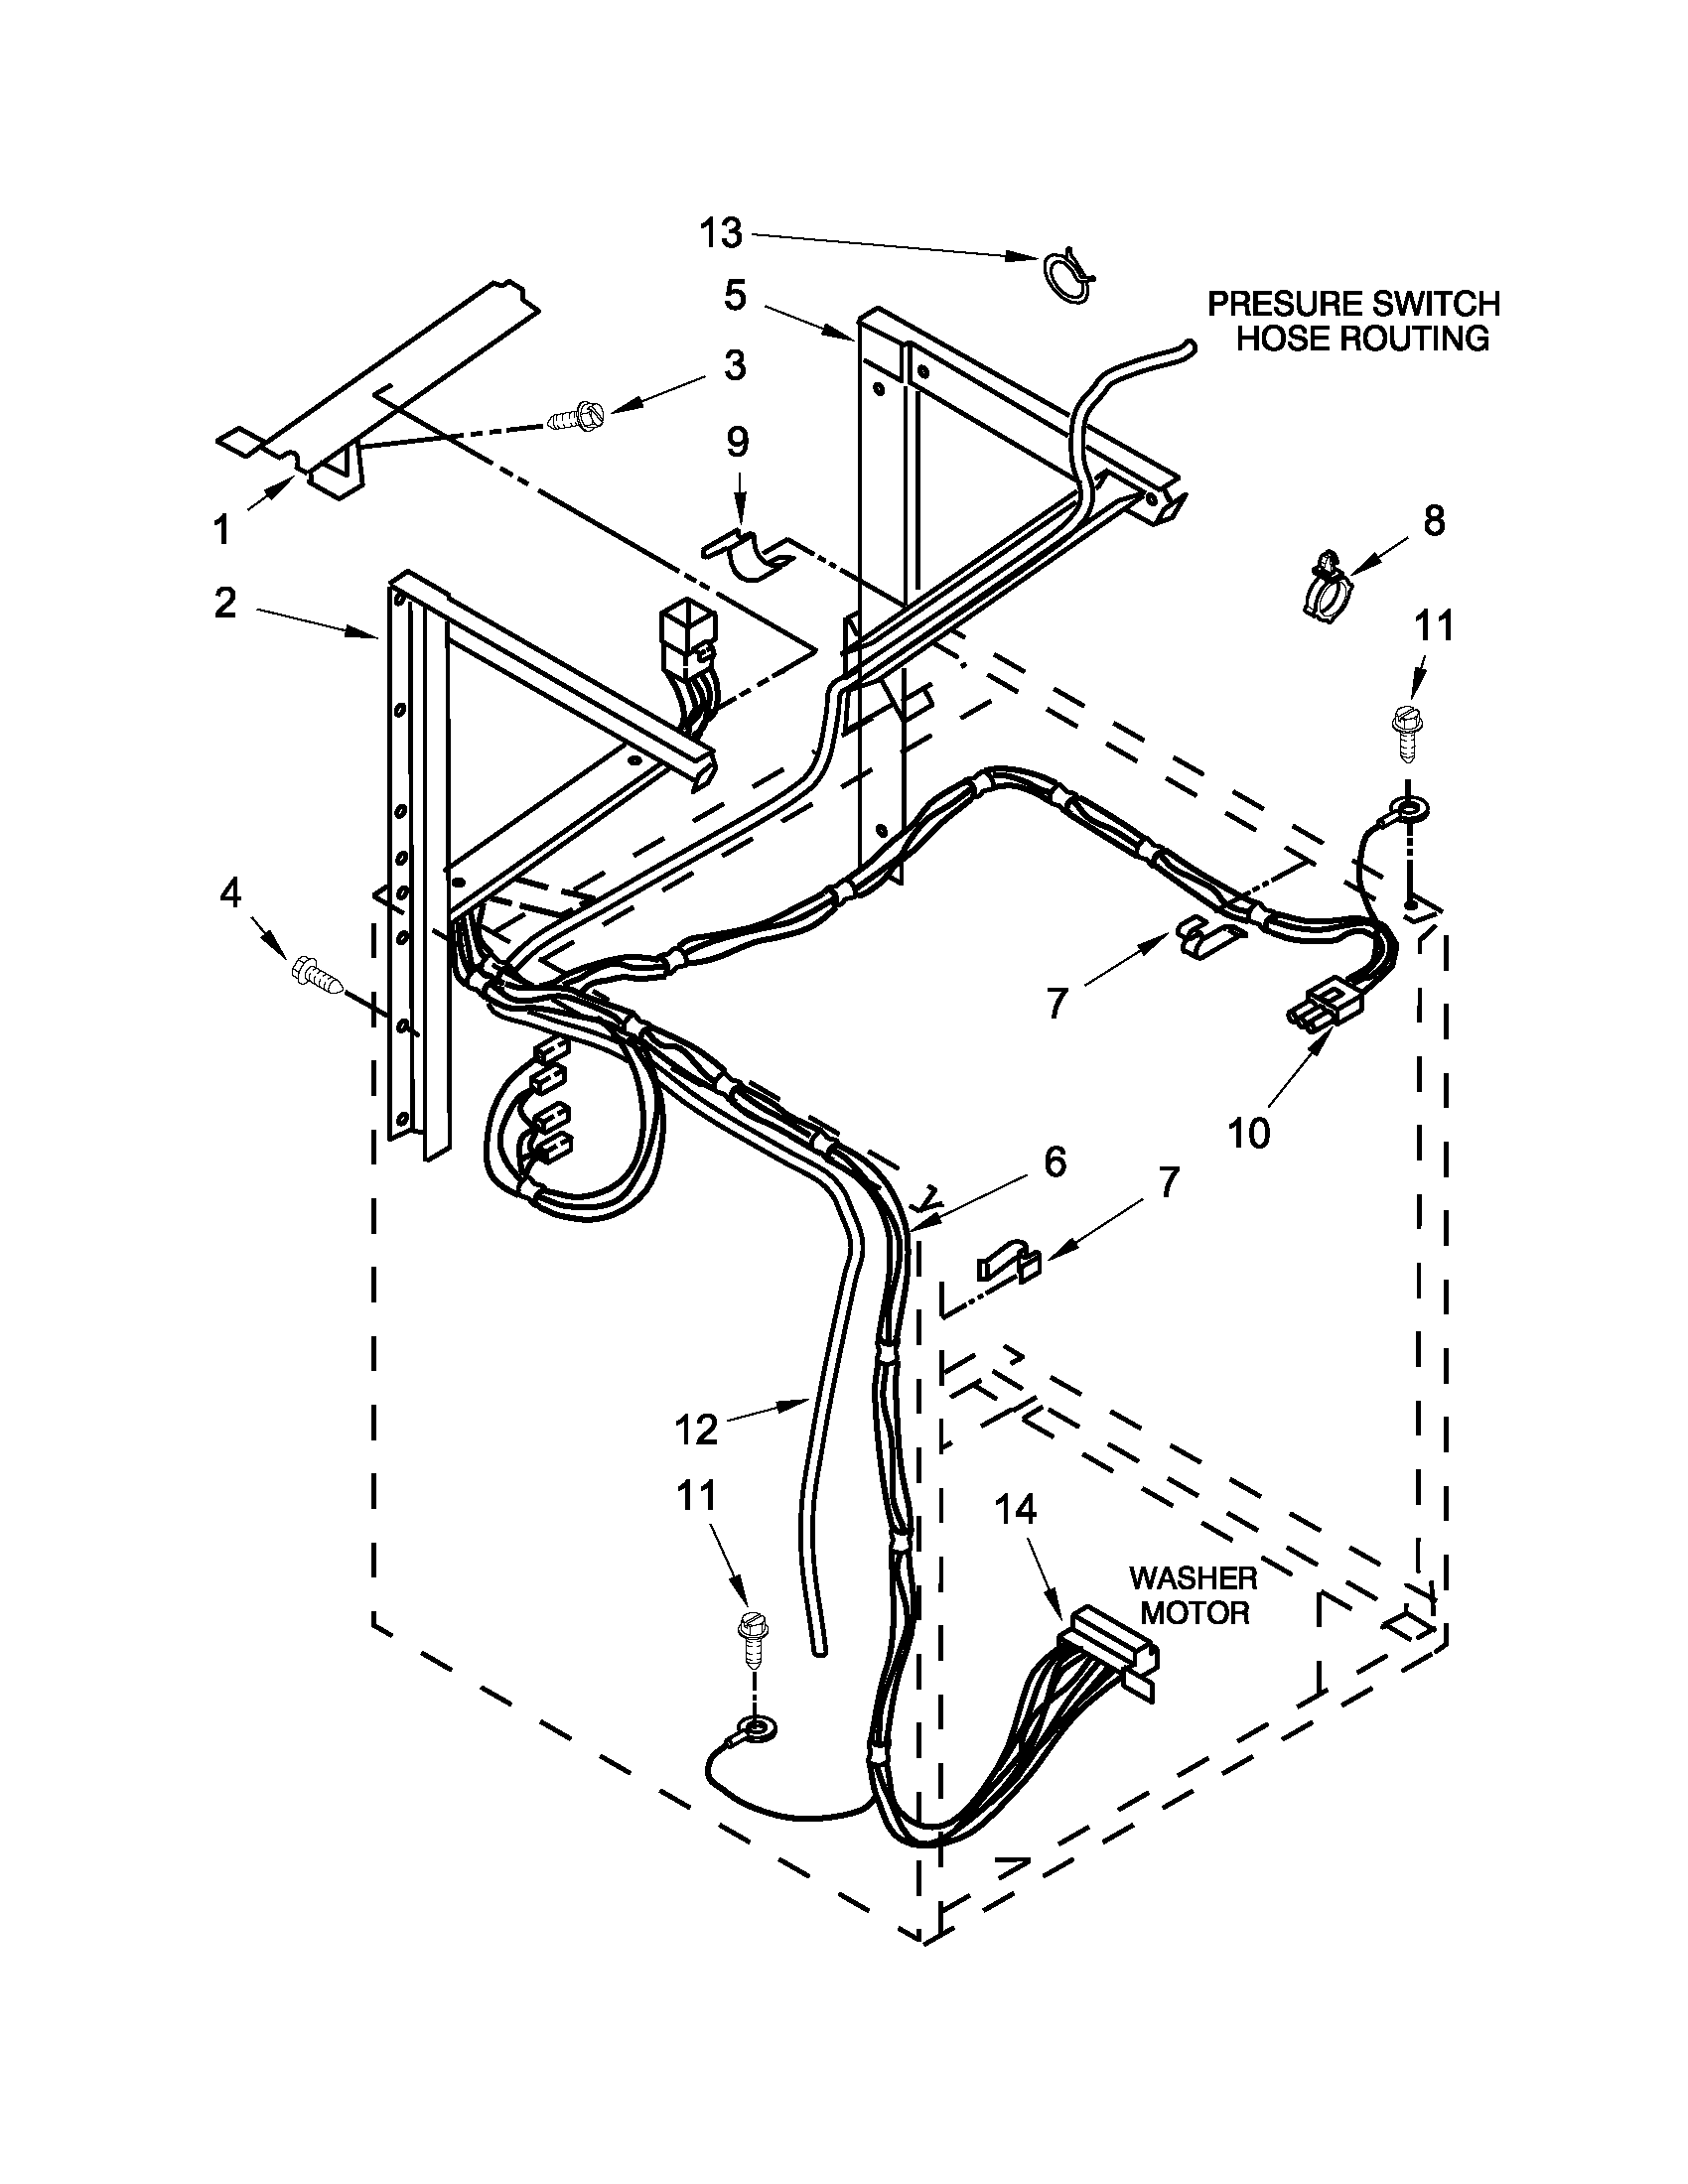 whirlpool lte5243dqb dryer support and washer parts diagram [ 1700 x 2200 Pixel ]